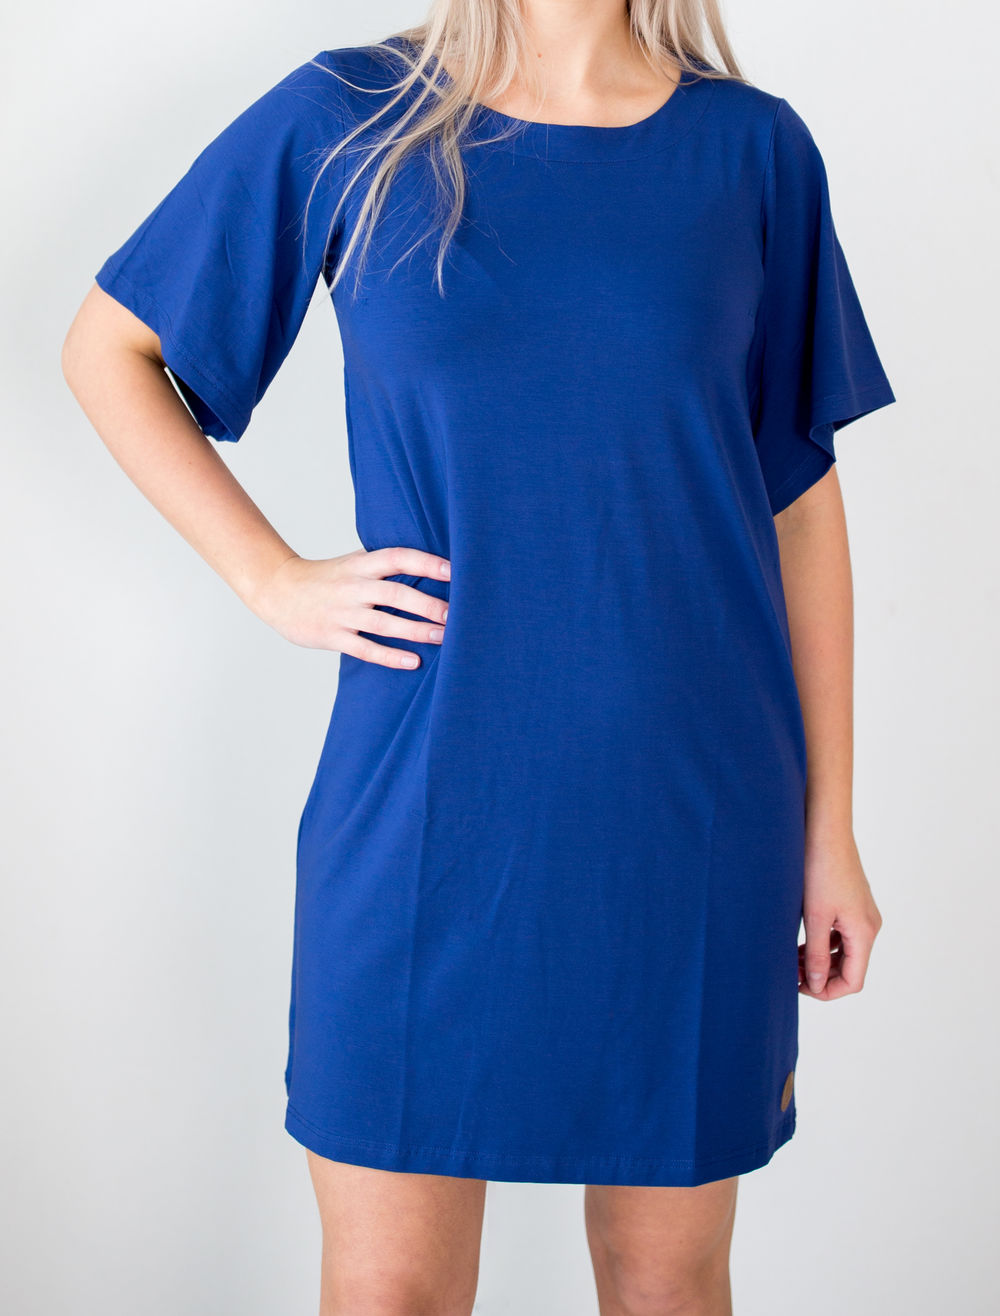 BLAA MANHATTAN DRESS, BLUE